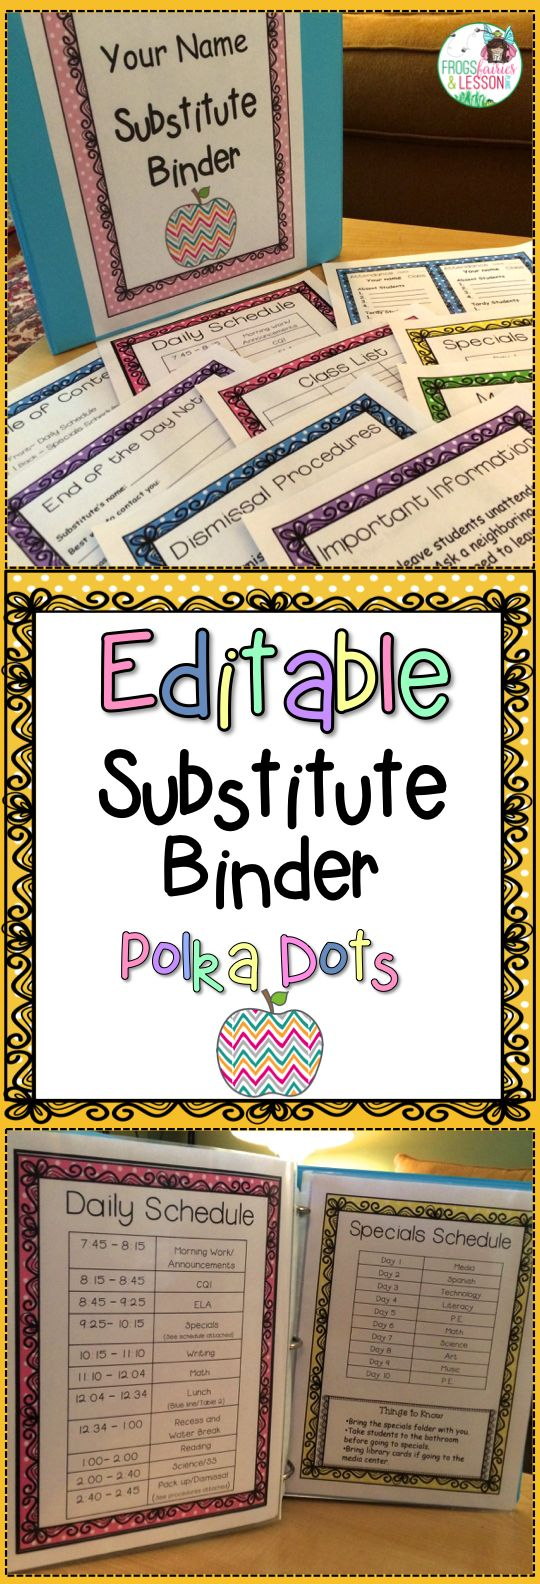 EDITABLE substitute binder! Cover choices and templates that will make it easy for you to take a sick day when you need one! Just click and edit each page for a professional looking and effective Substitute Binder! Polka Dots theme